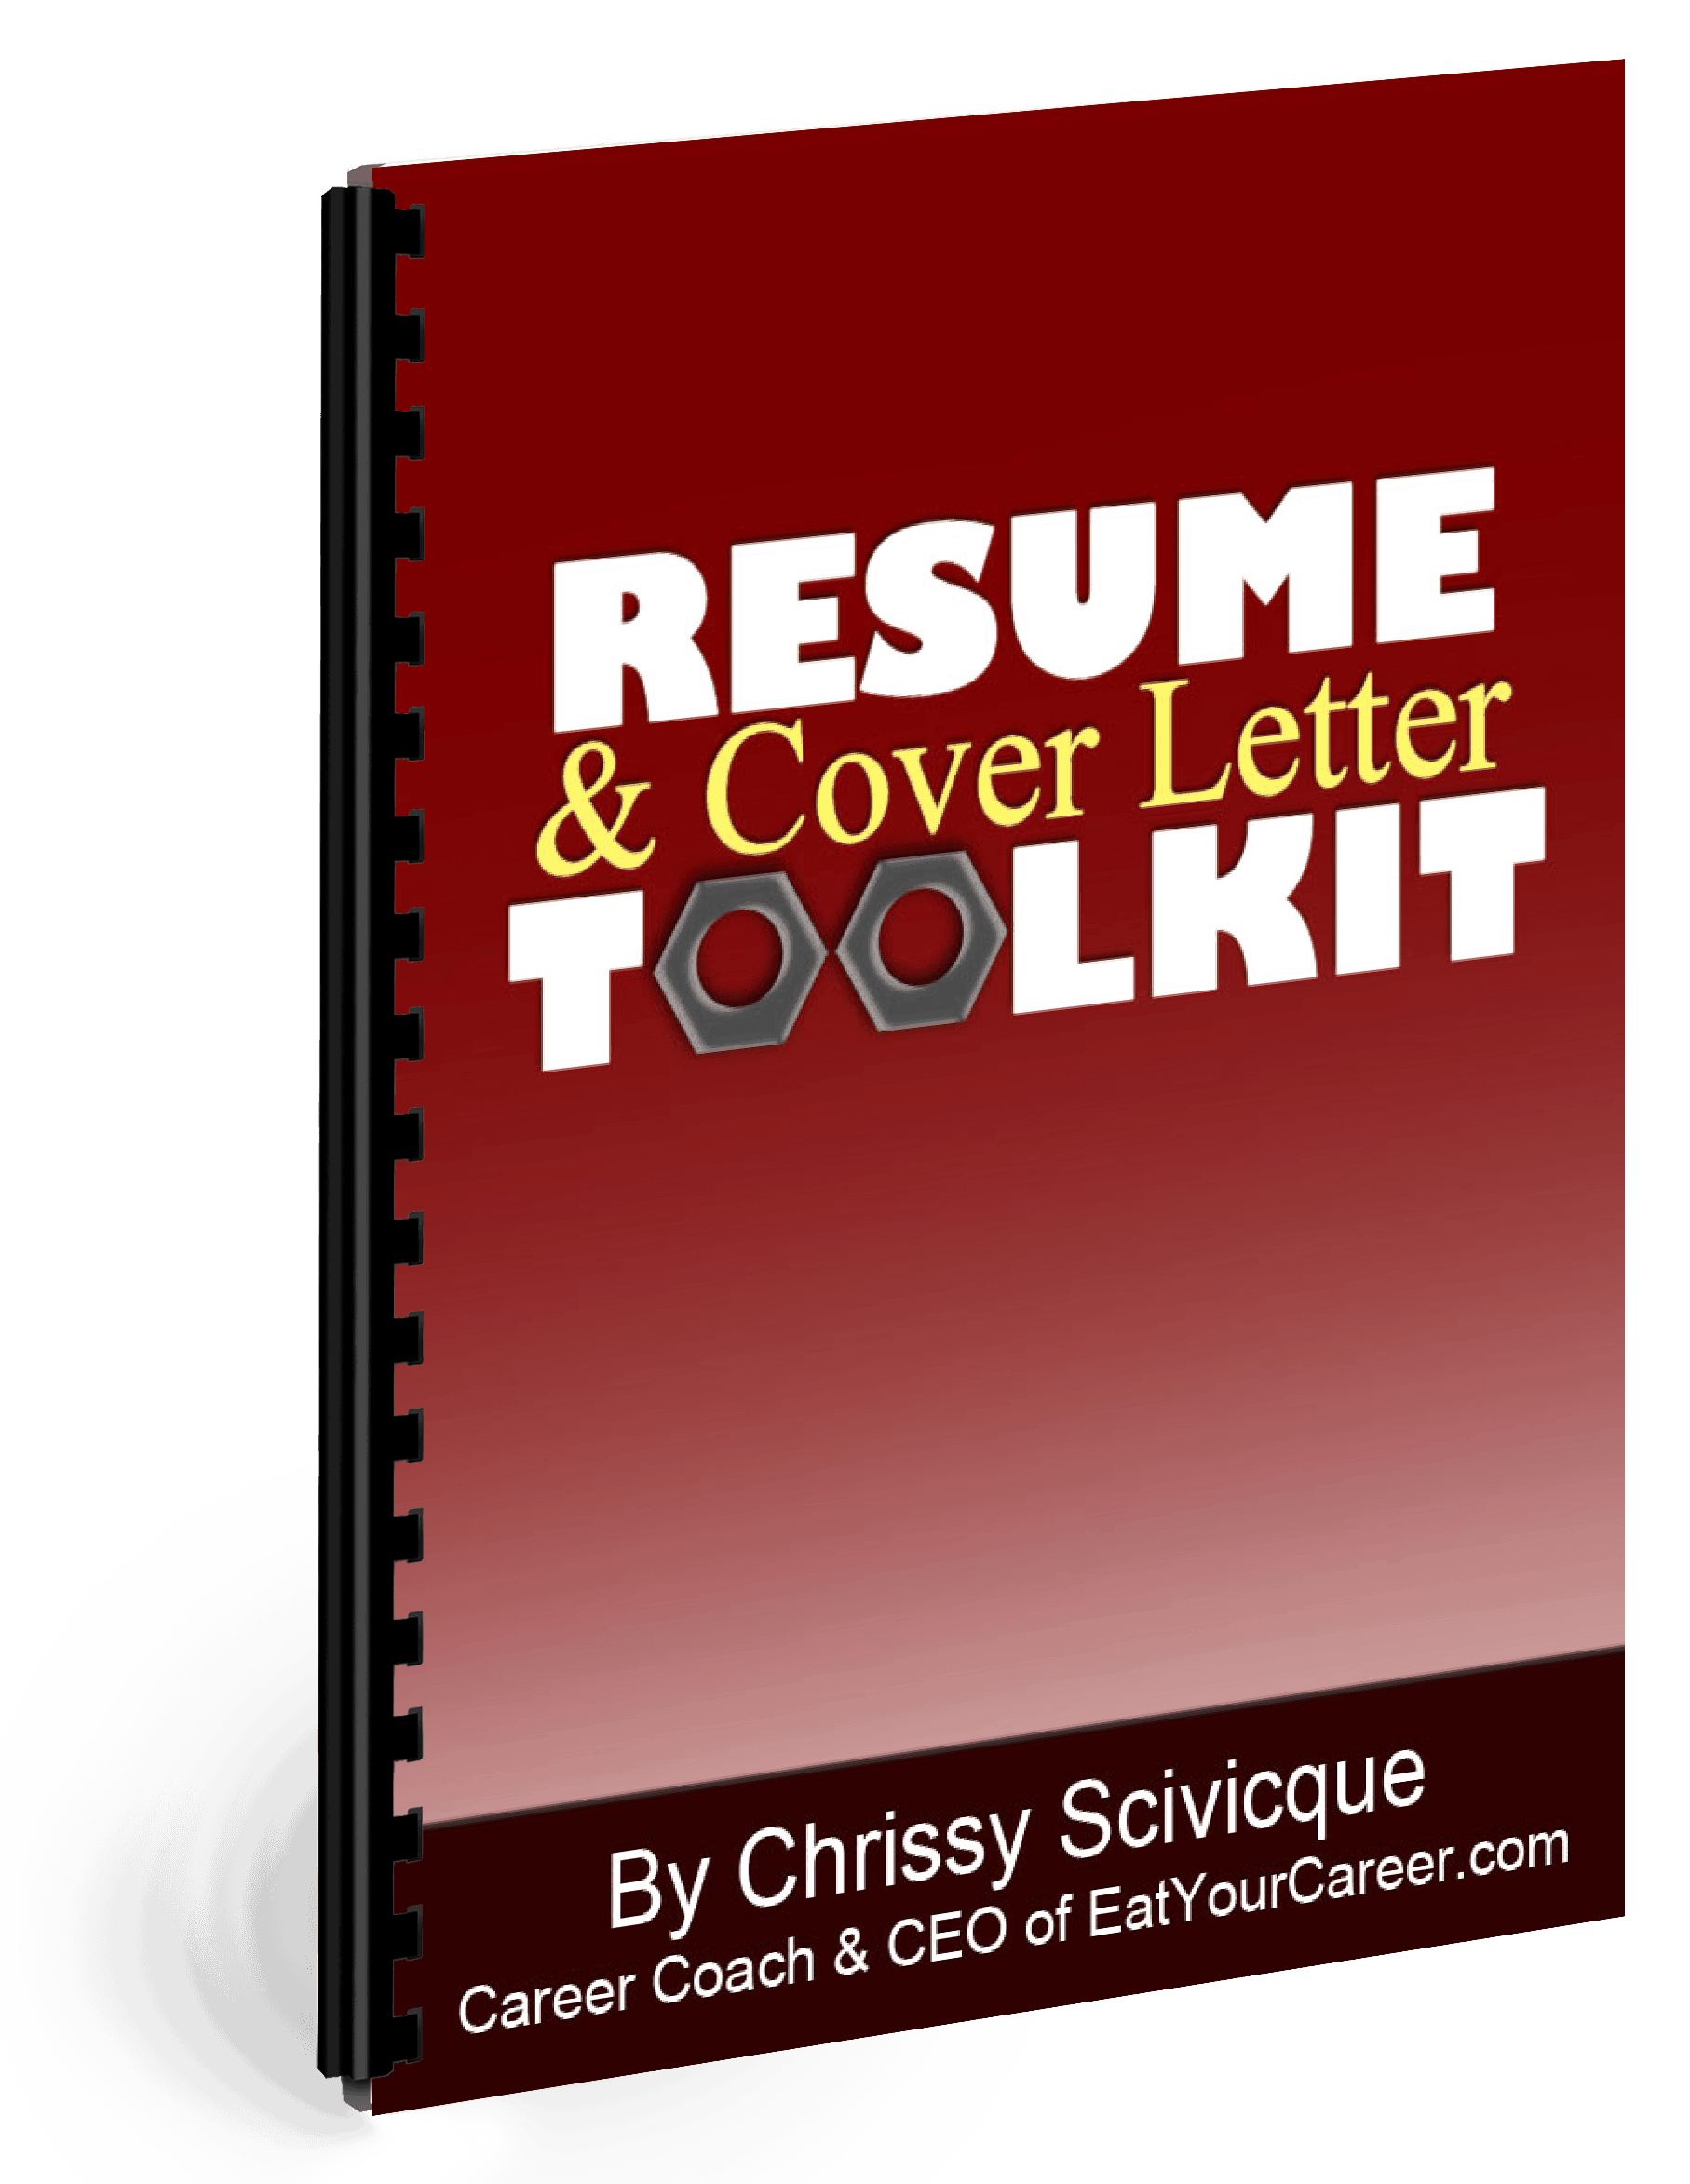 Resume & Cover Letter Toolkit - Eat Your Career